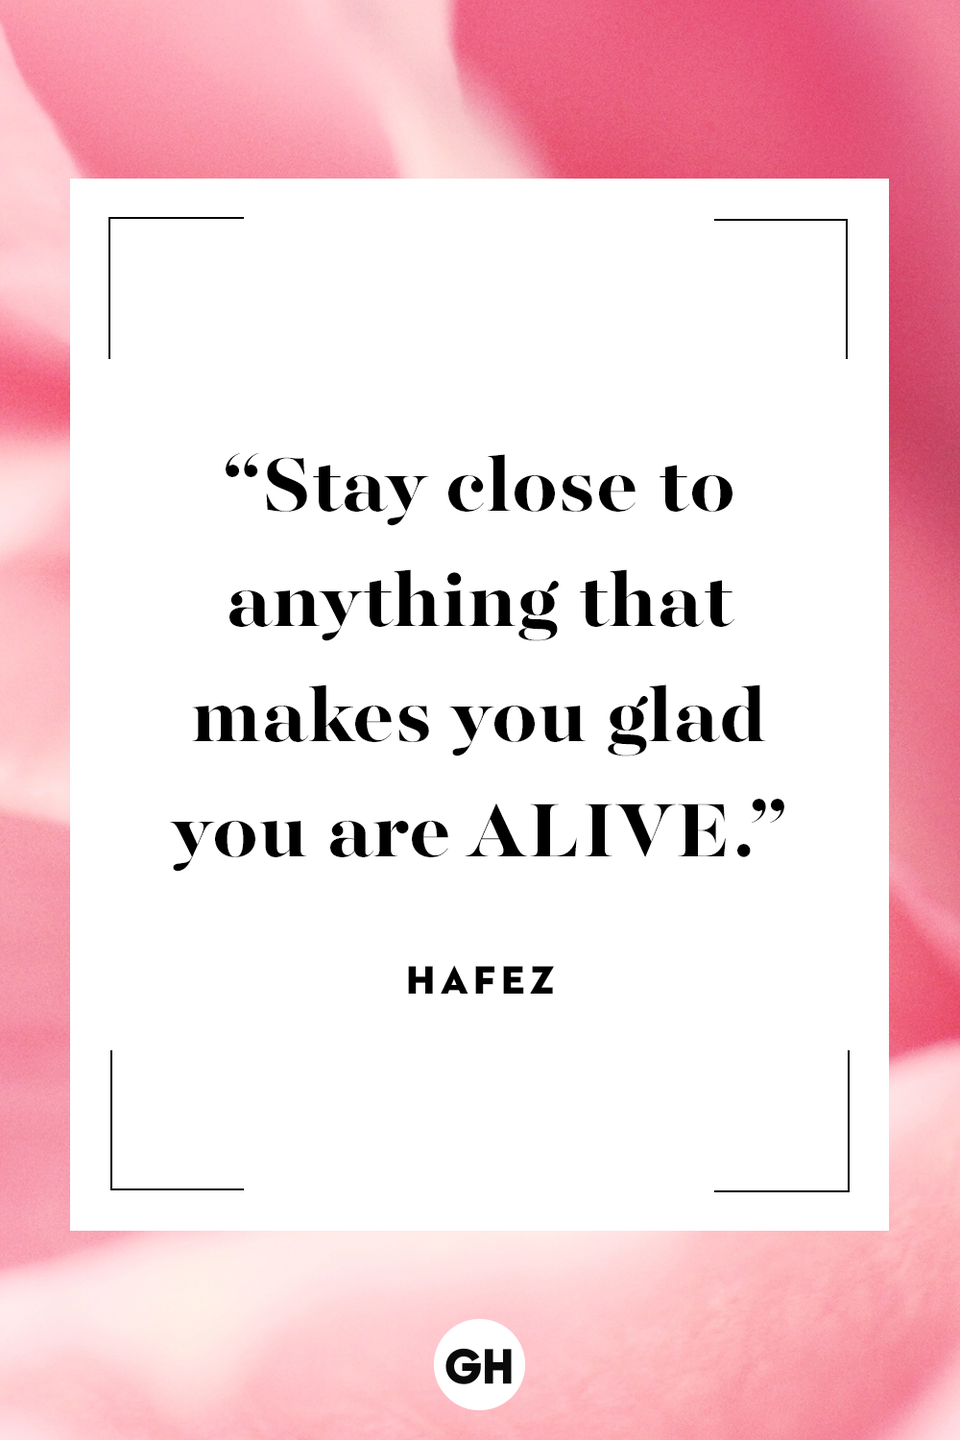 """<p>Stay close to anything that makes you glad you are alive.</p><p><strong>RELATED: </strong><a href=""""https://www.goodhousekeeping.com/life/parenting/g25412857/family-quotes/"""" rel=""""nofollow noopener"""" target=""""_blank"""" data-ylk=""""slk:Family Quotes That'll Remind You How Blessed You Are"""" class=""""link rapid-noclick-resp"""">Family Quotes That'll Remind You How Blessed You Are</a></p>"""